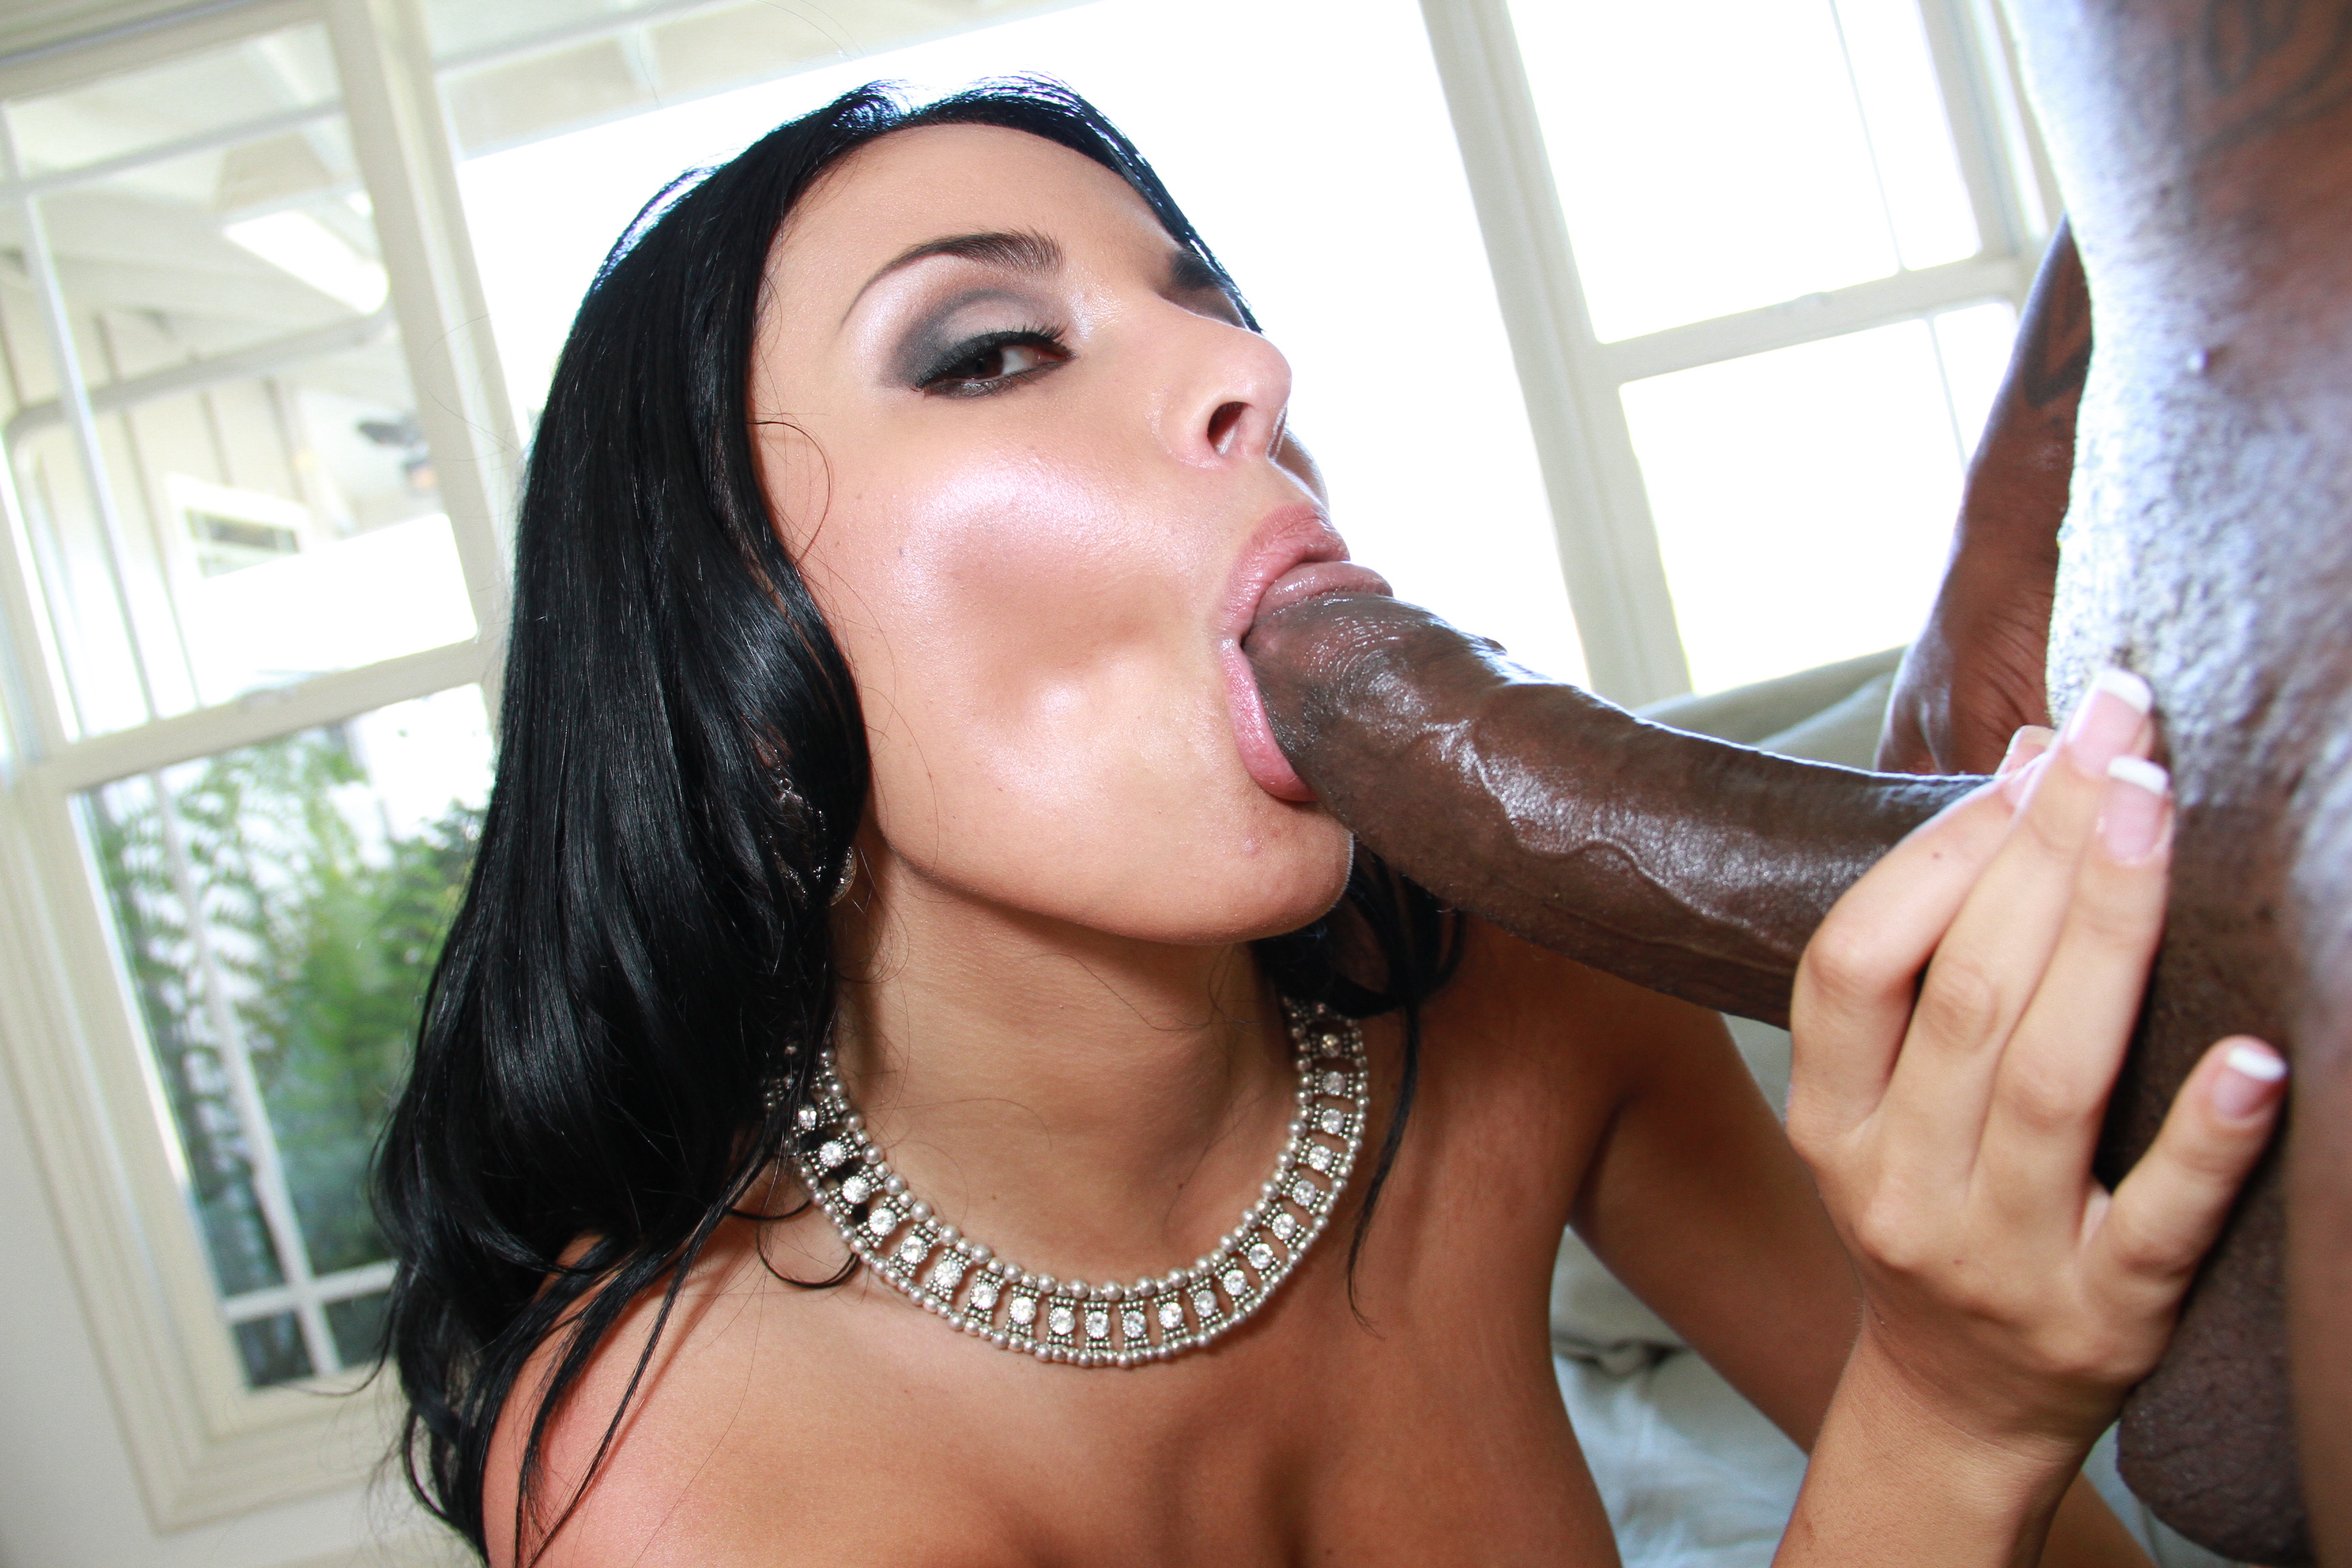 star-strong-woman-sucking-dick-bang-girl